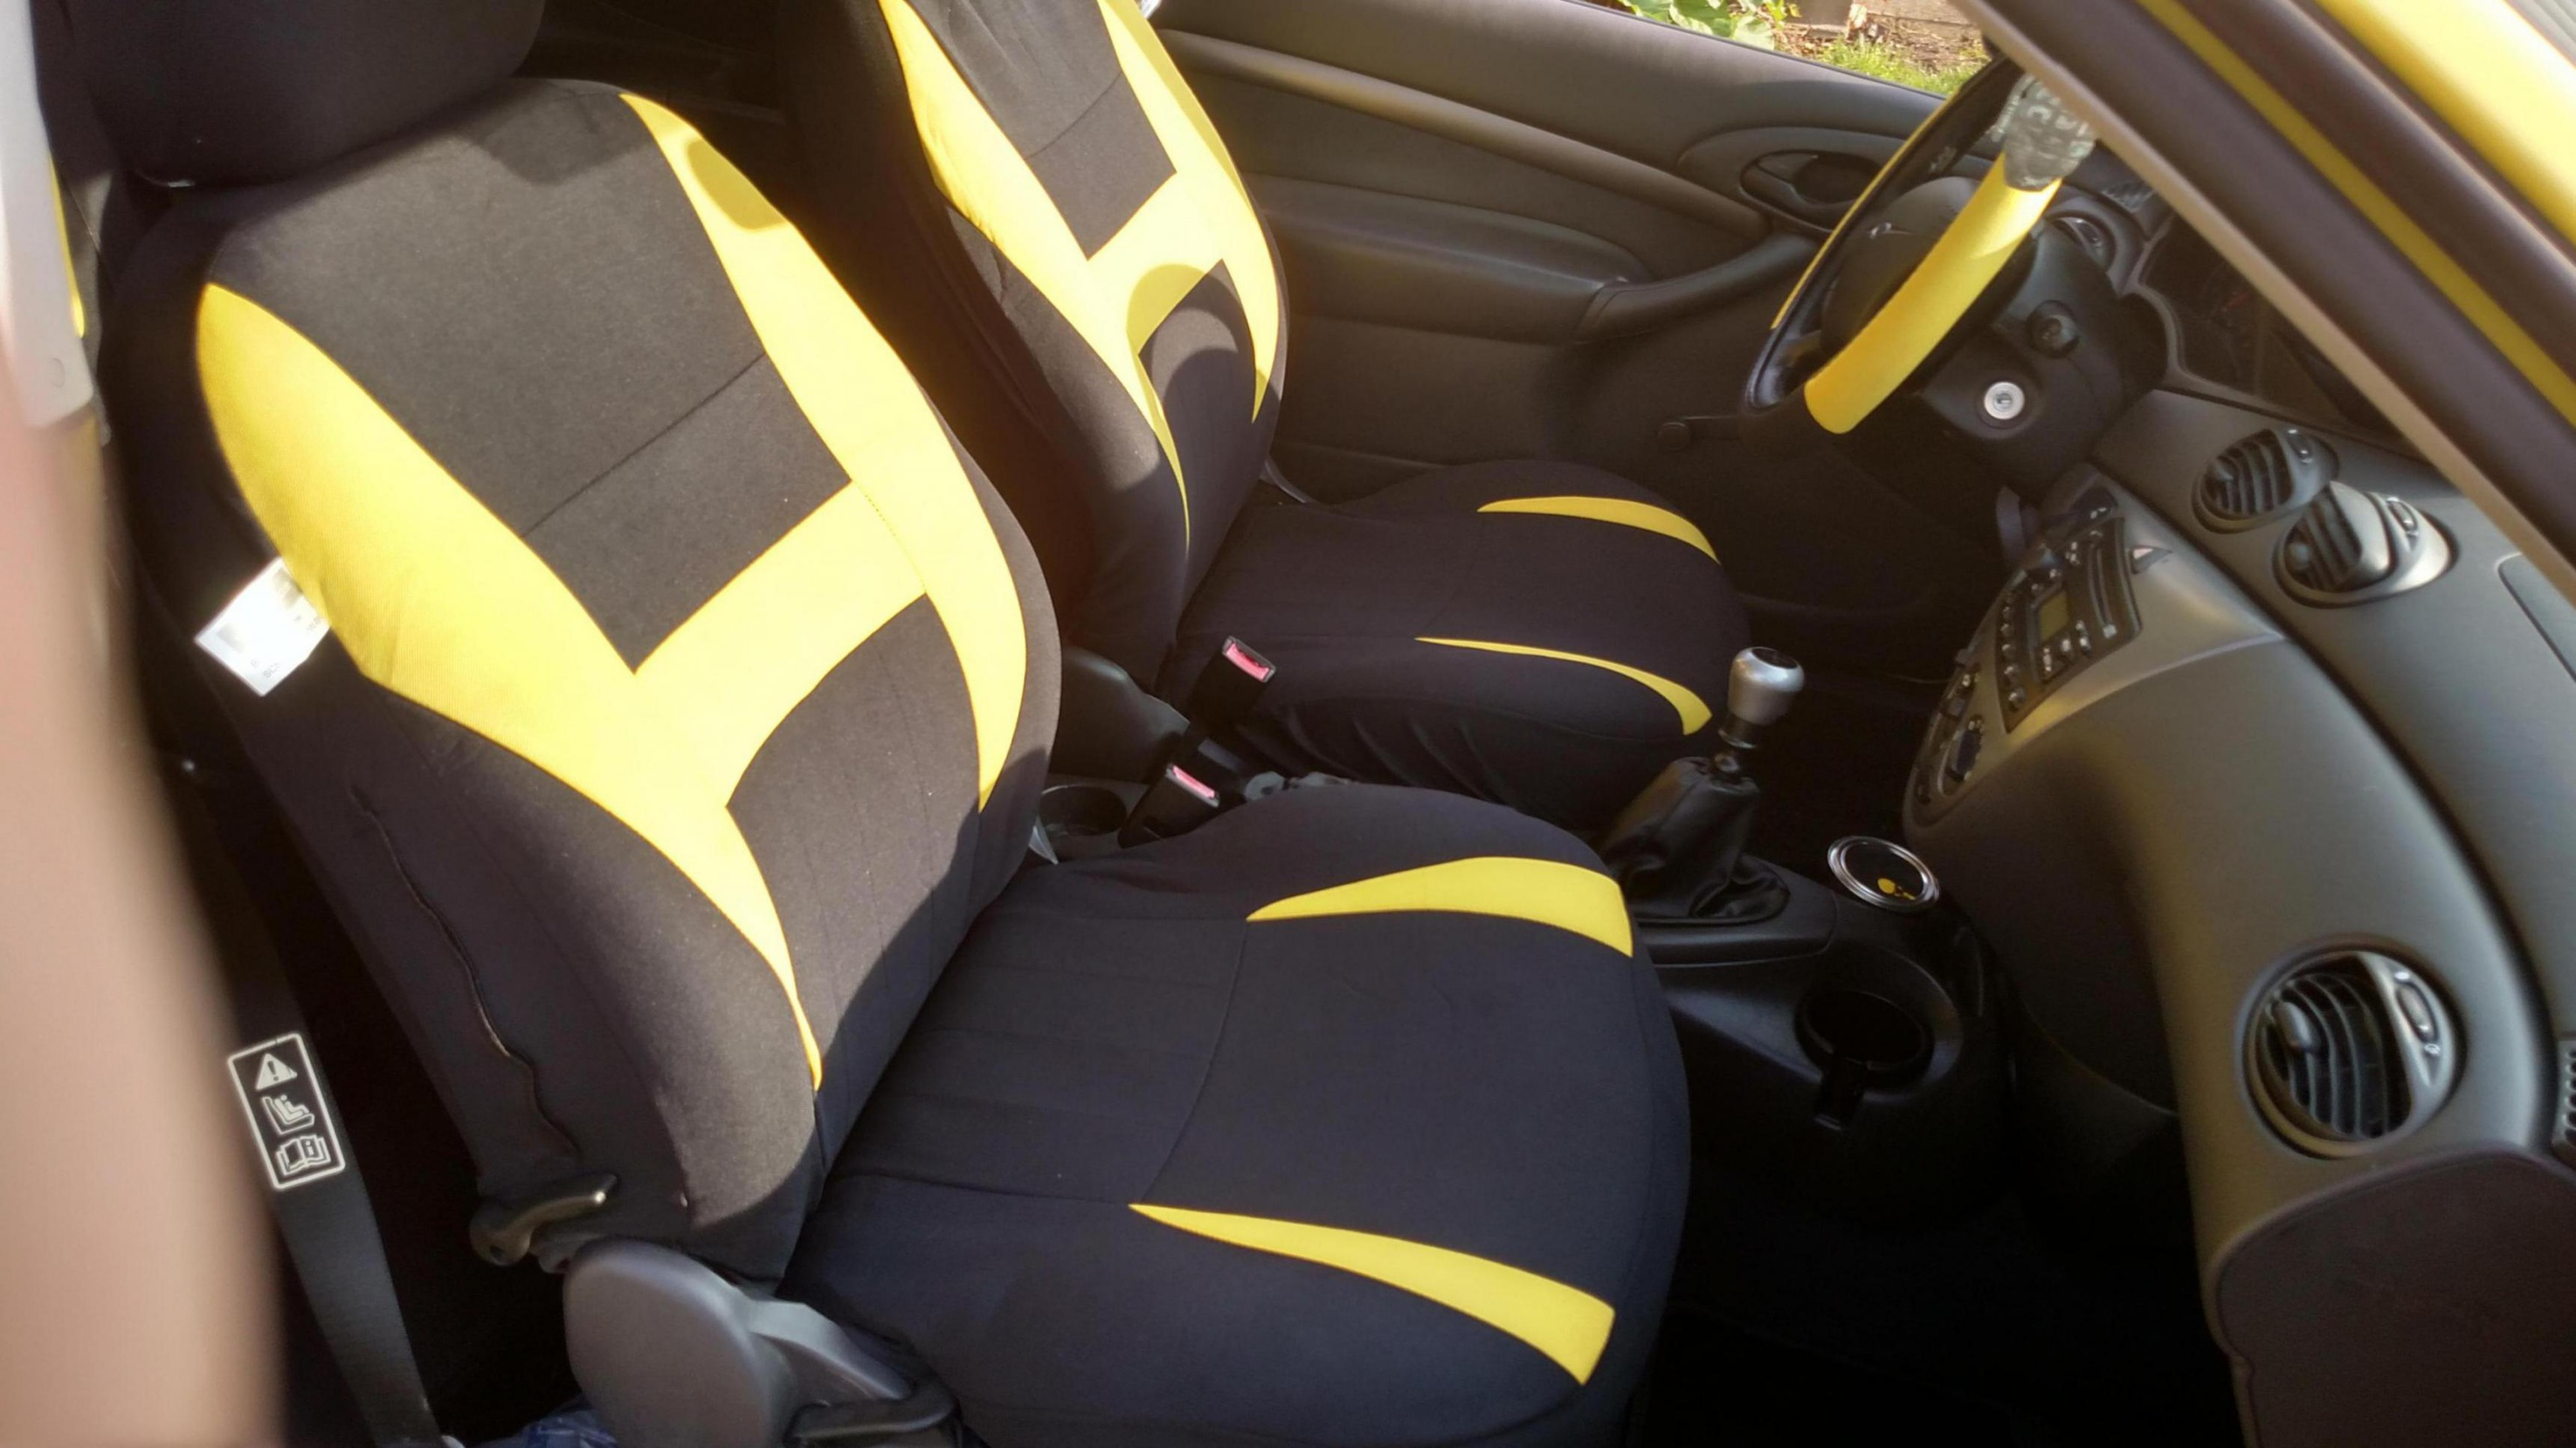 Seat covers img_20150710_181007682_hdr_1436573859159 jpg